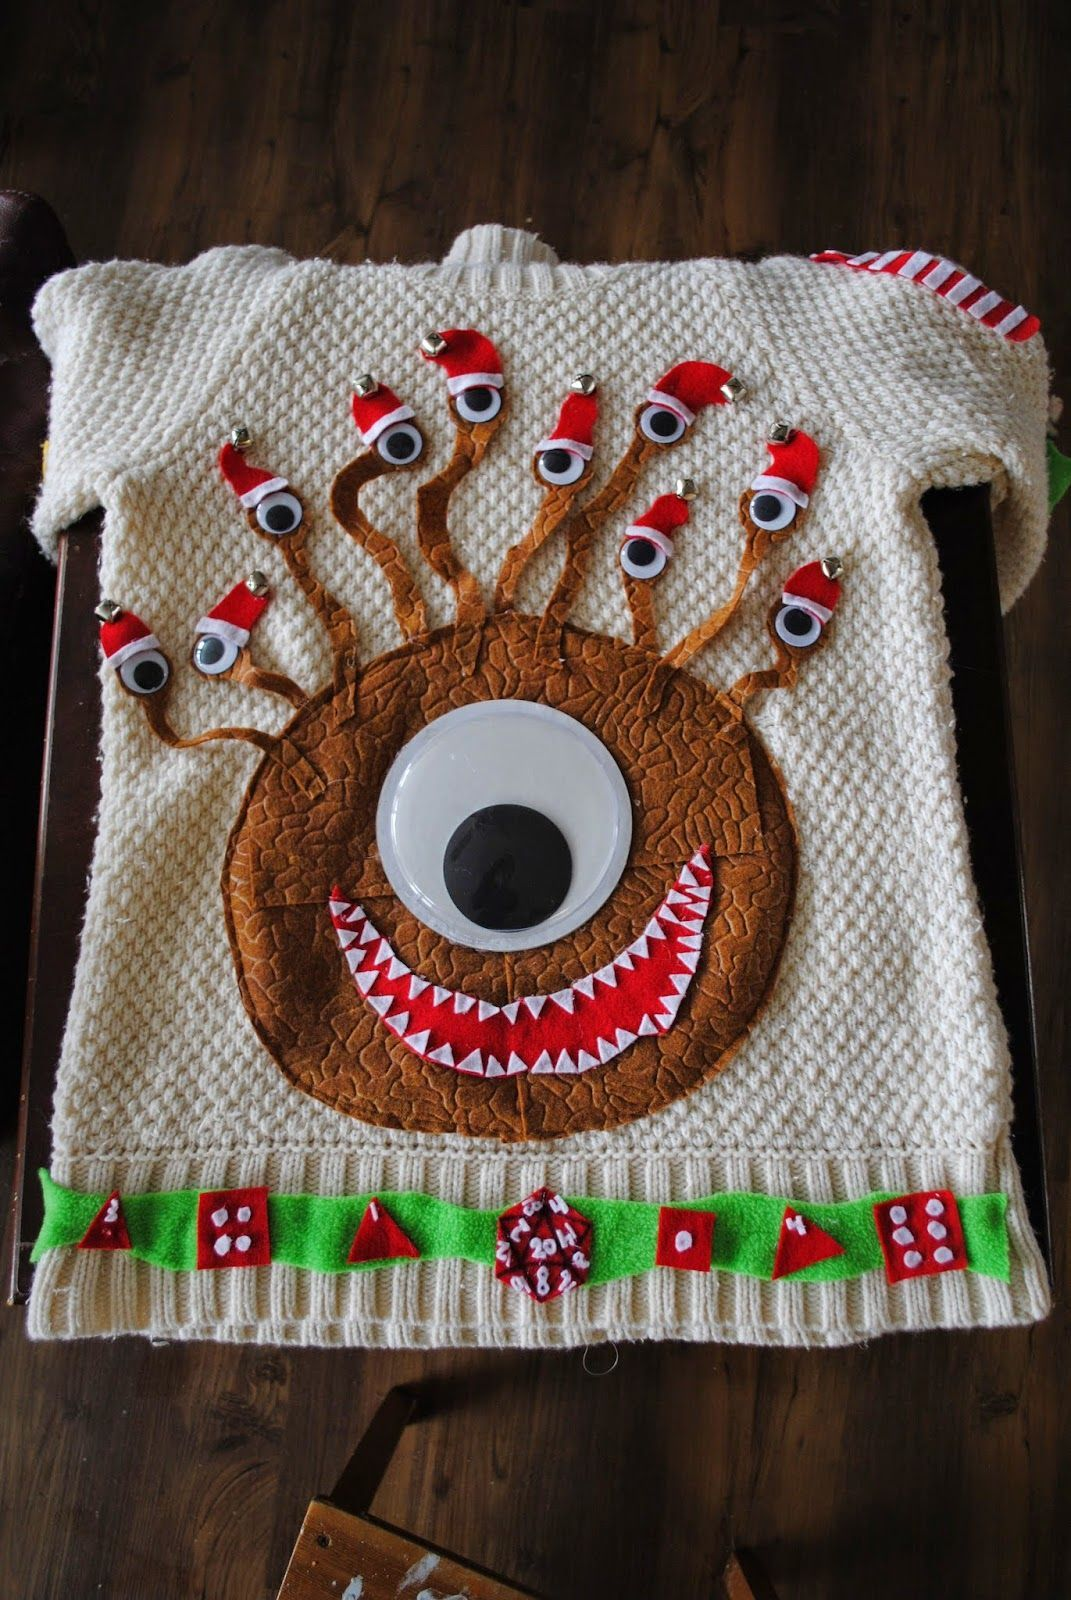 Ki free games wizard101 prizes for ugly sweater